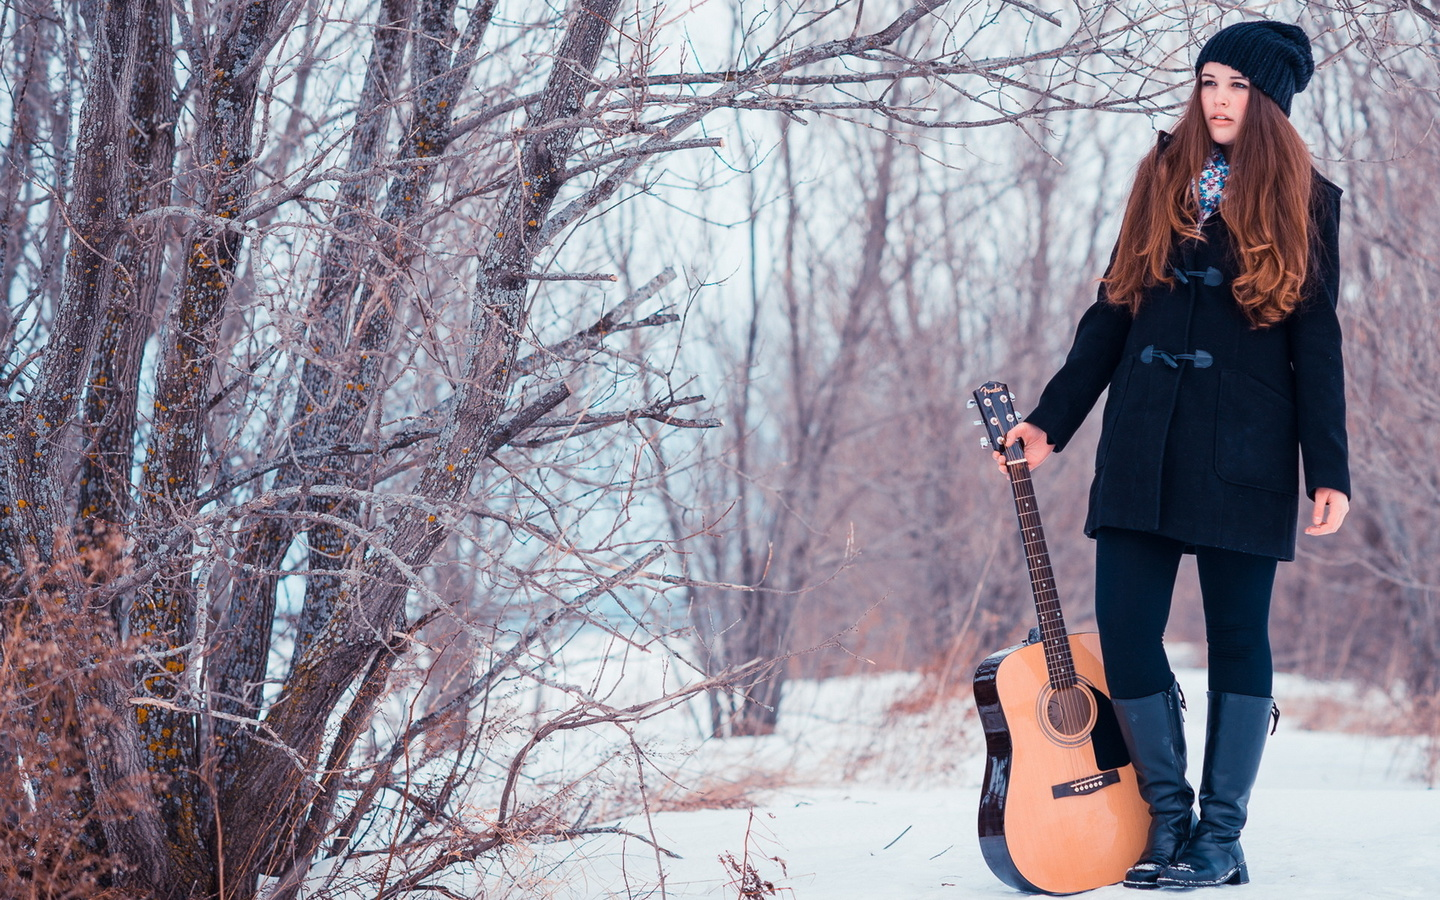 Girl, guitare, snow